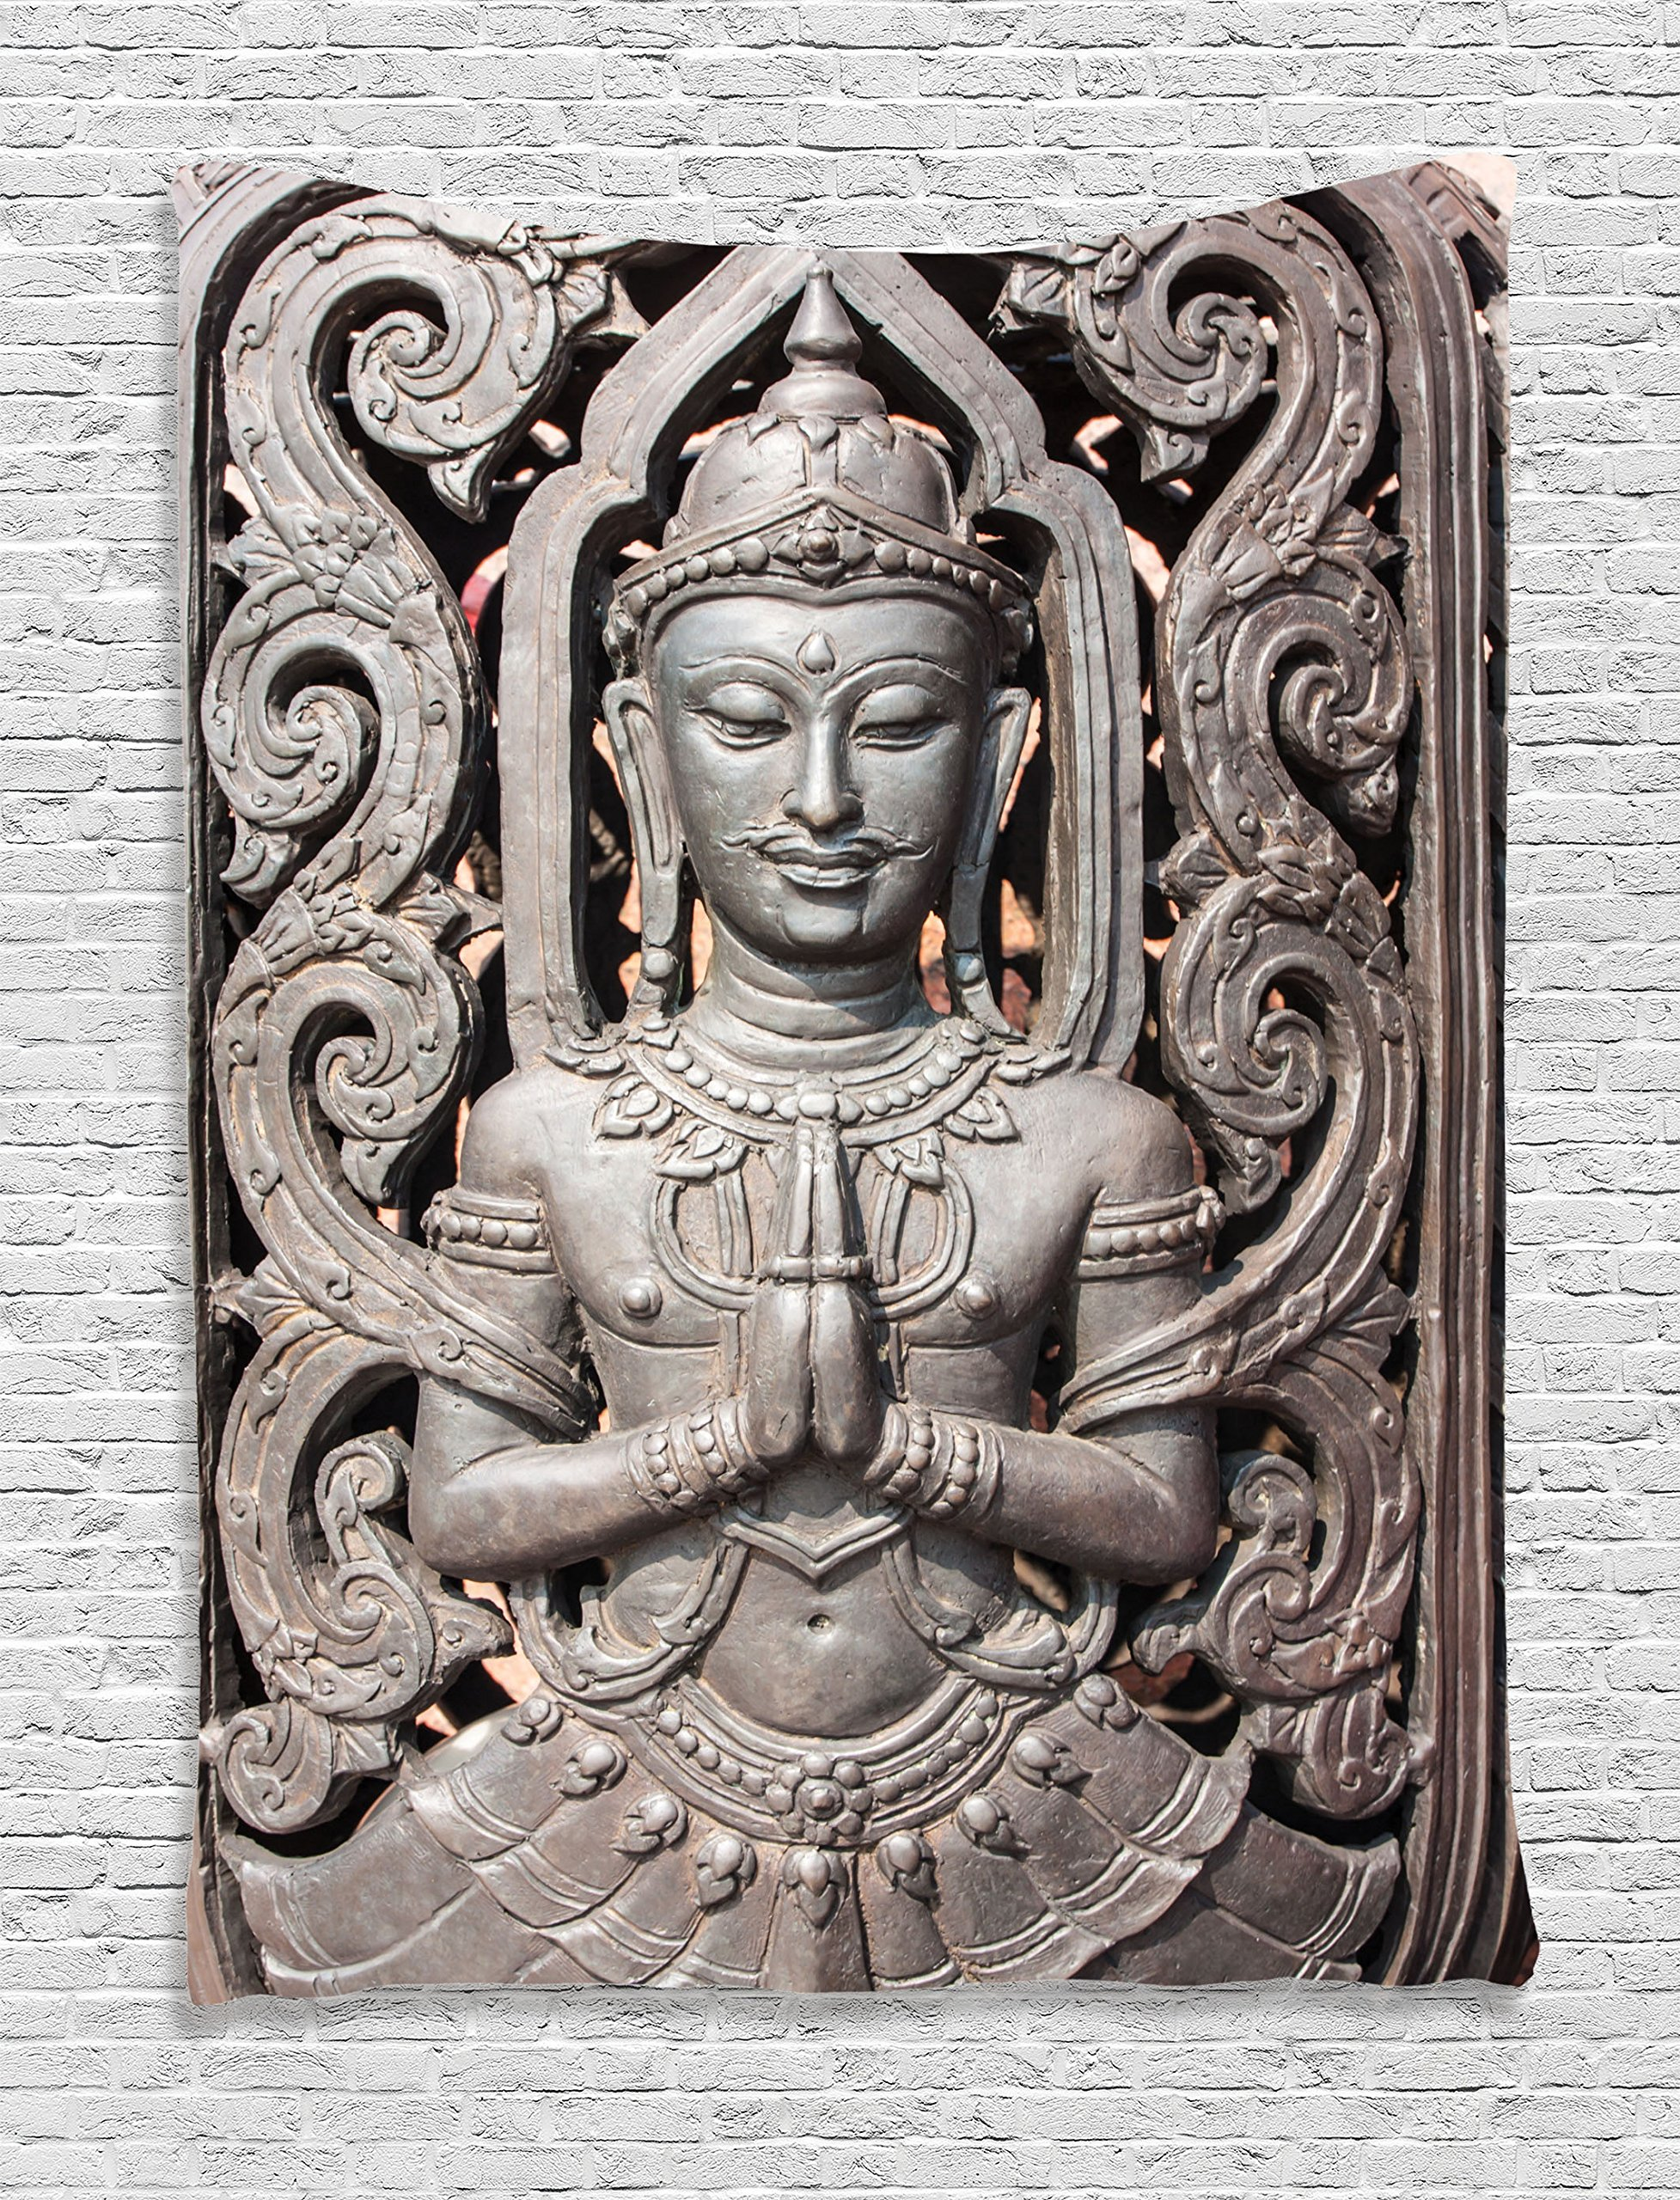 Ambesonne Buddha Decor Collection, Antique Buddha in Traditional Thai Art with Swirling Floral Patterns Carving Japanese Decor, Bedroom Living Room Dorm Wall Hanging Tapestry, Bronze